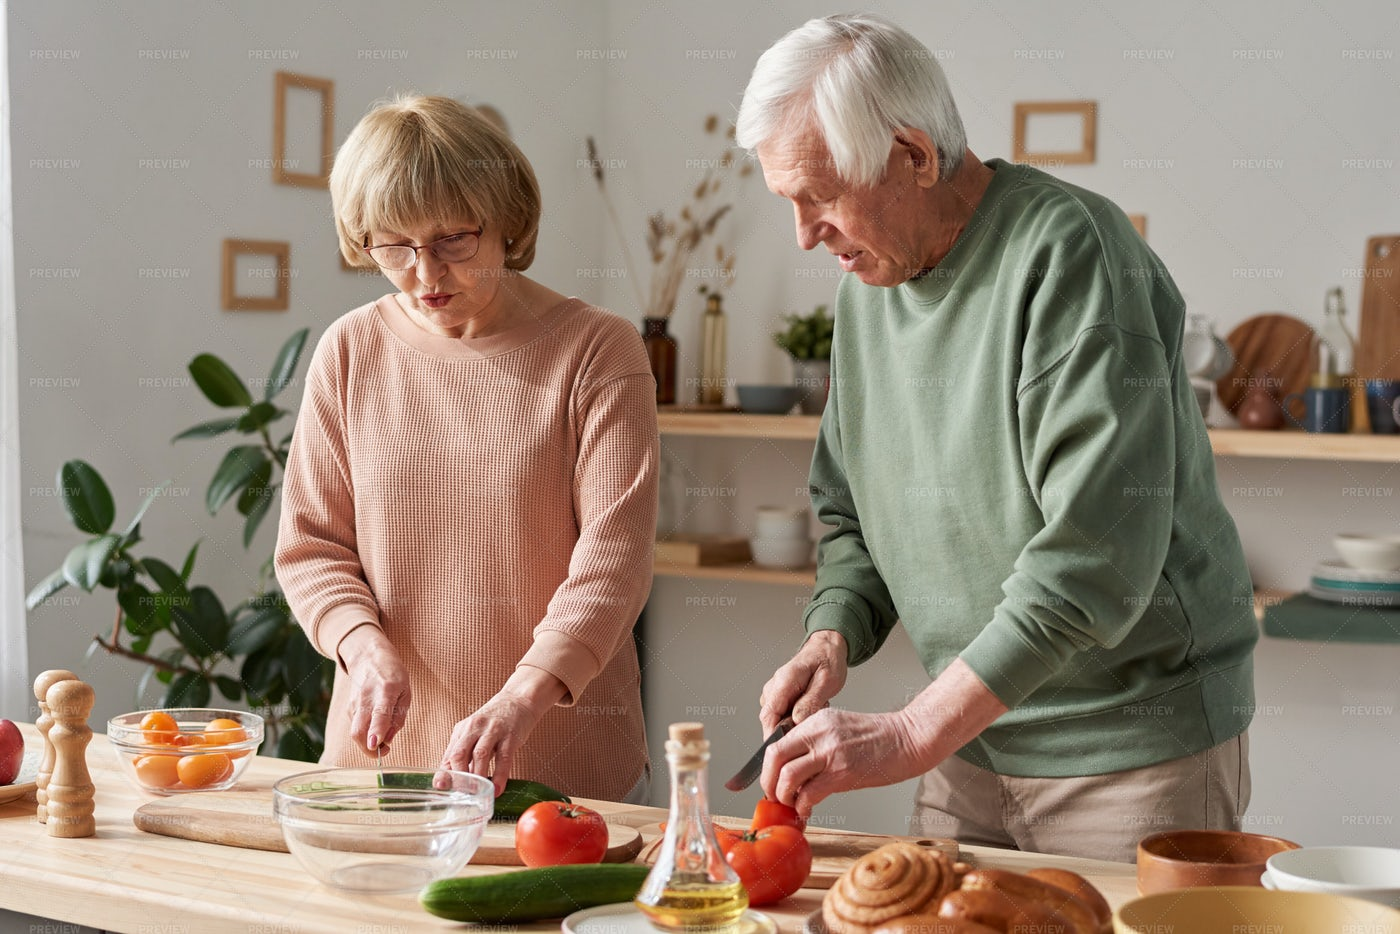 Couple Cutting In Kitchen: Stock Photos